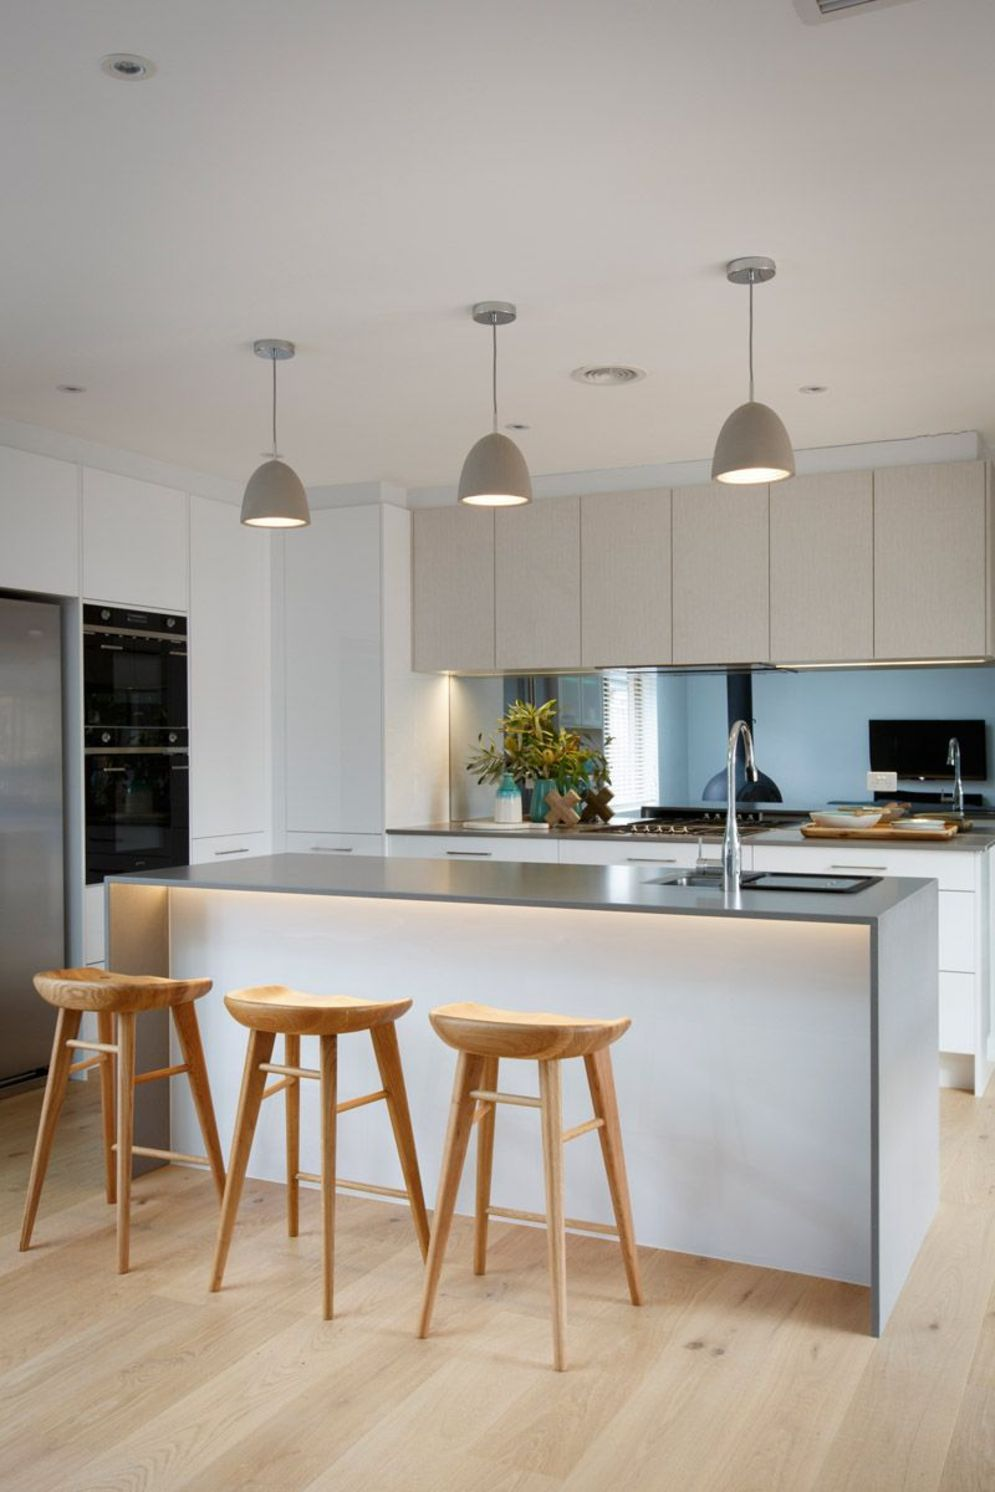 Modern kitchen updates using efficient concrete benchtops to show sturdier interior display Image 31